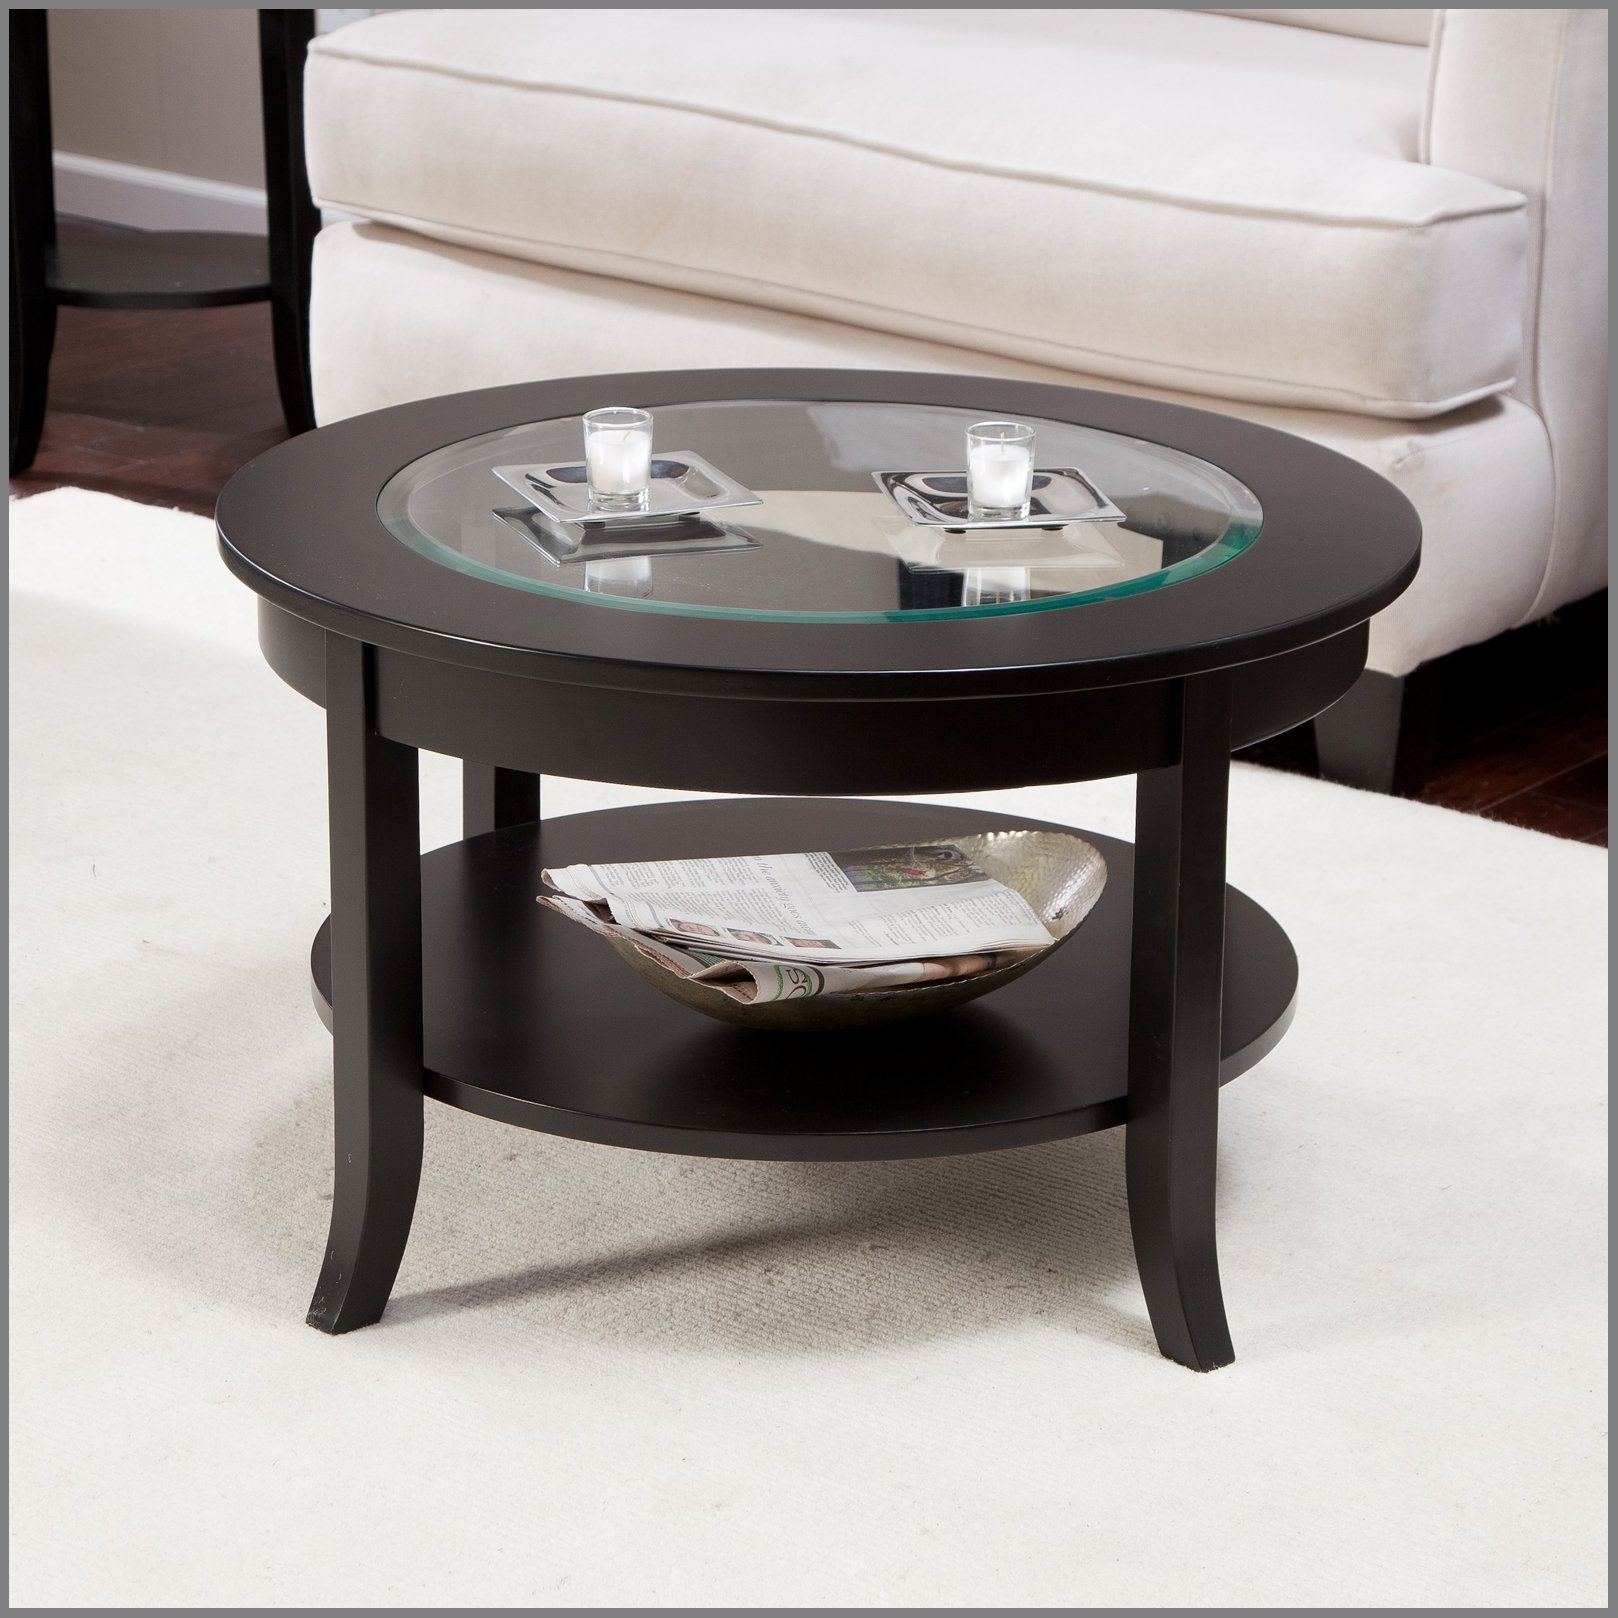 wonderfull small round coffee table for living room decor ideas php end tables rooms glass multi drawer cottage carpet brown leather sofa height lamps espresso big lots hours